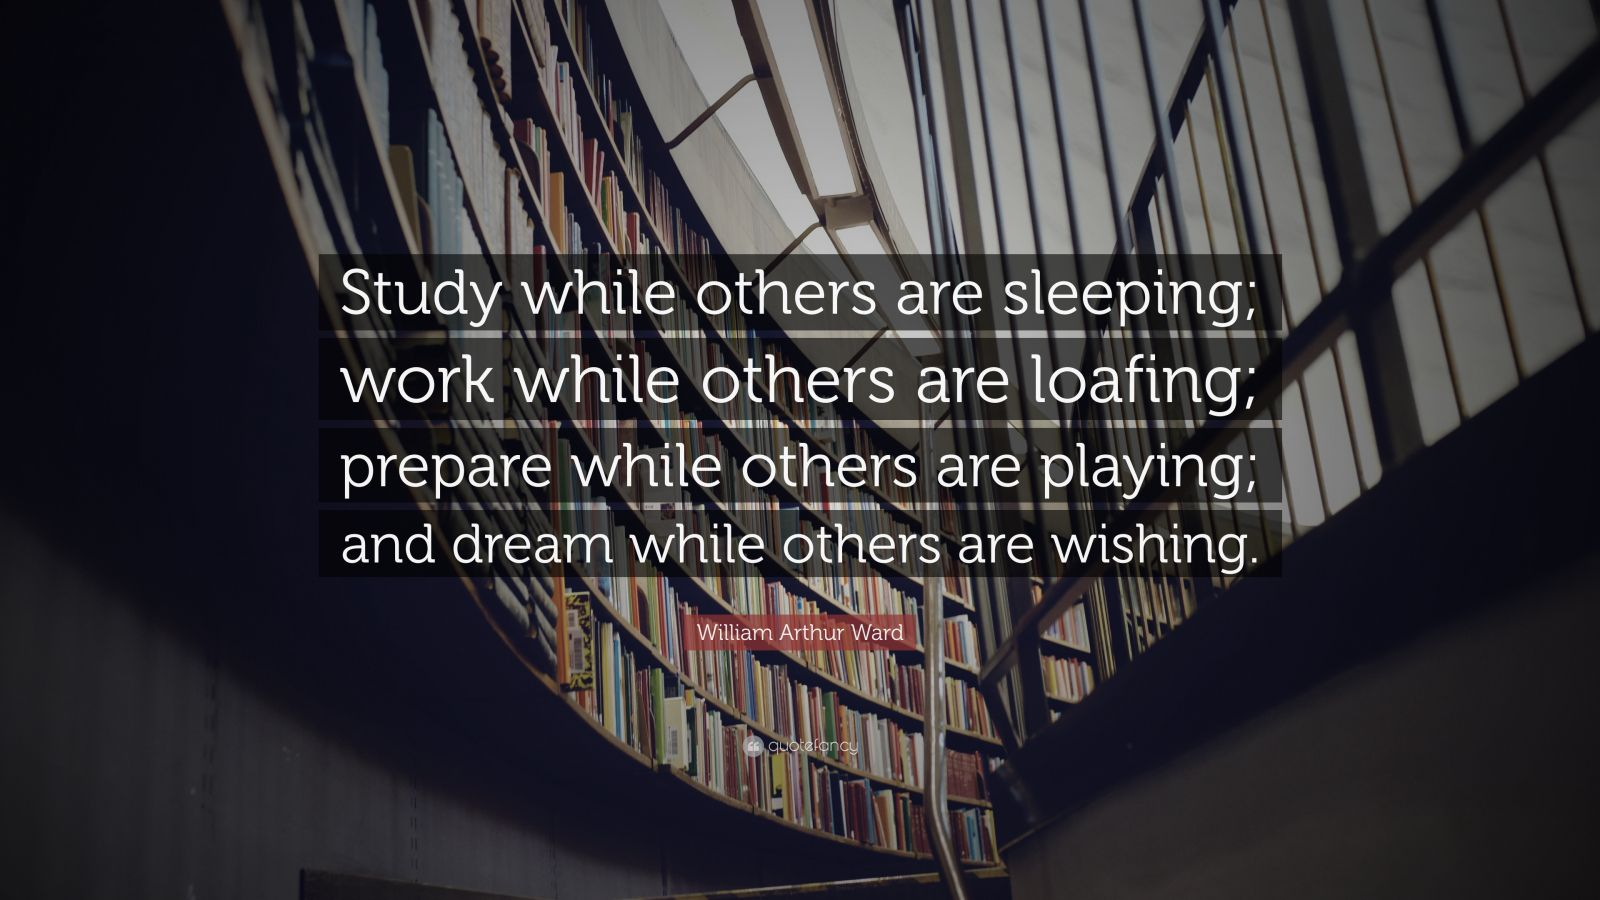 "Sleep Quotes: ""Study while others are sleeping; work while others are loafing; prepare while others are playing; and dream while others are wishing."" — William Arthur Ward"